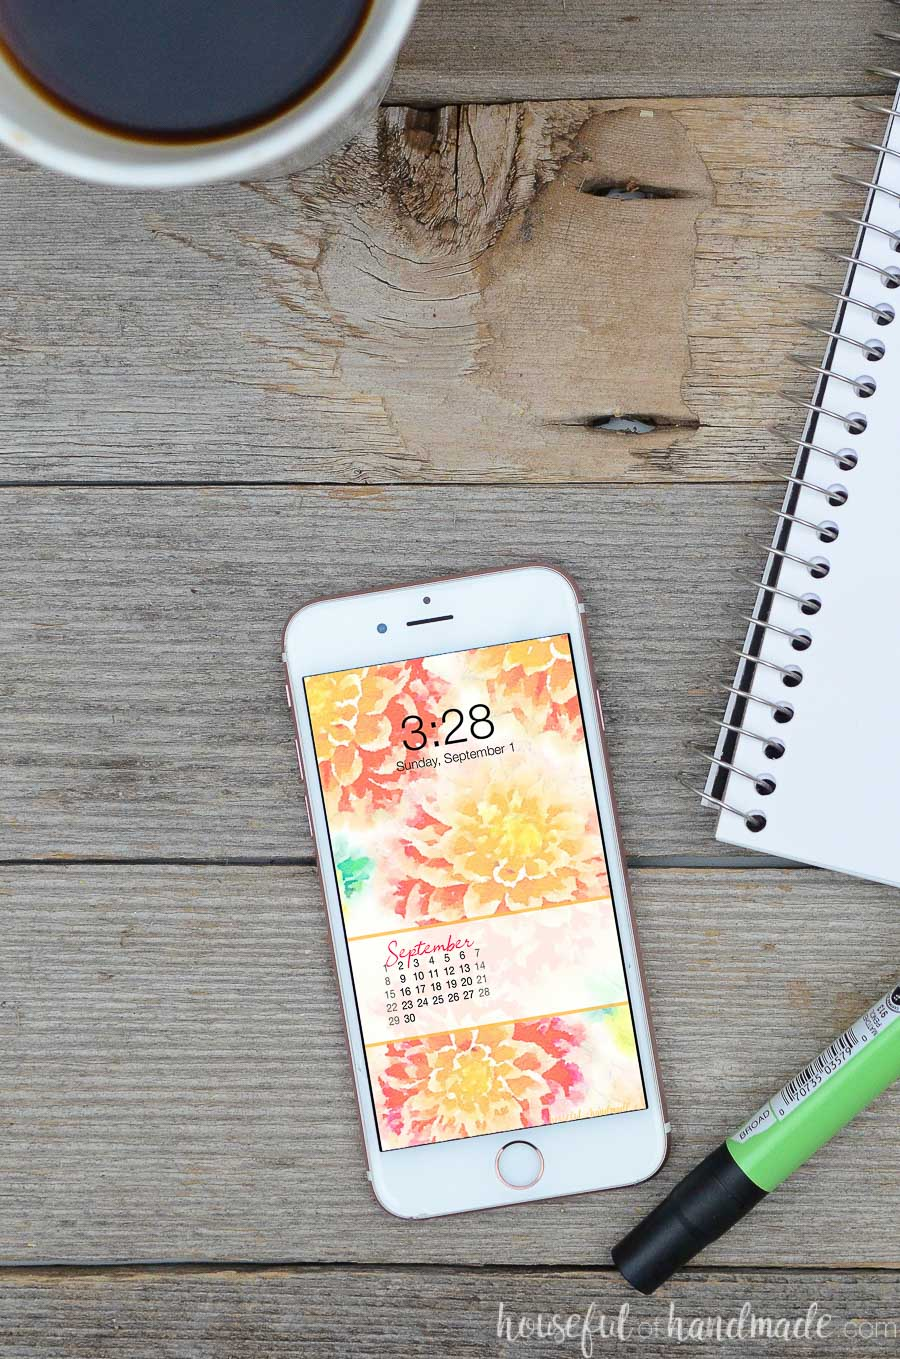 Desk with notepad, coffee, and smartphone with floral wallpaper with September calendar on the screen.